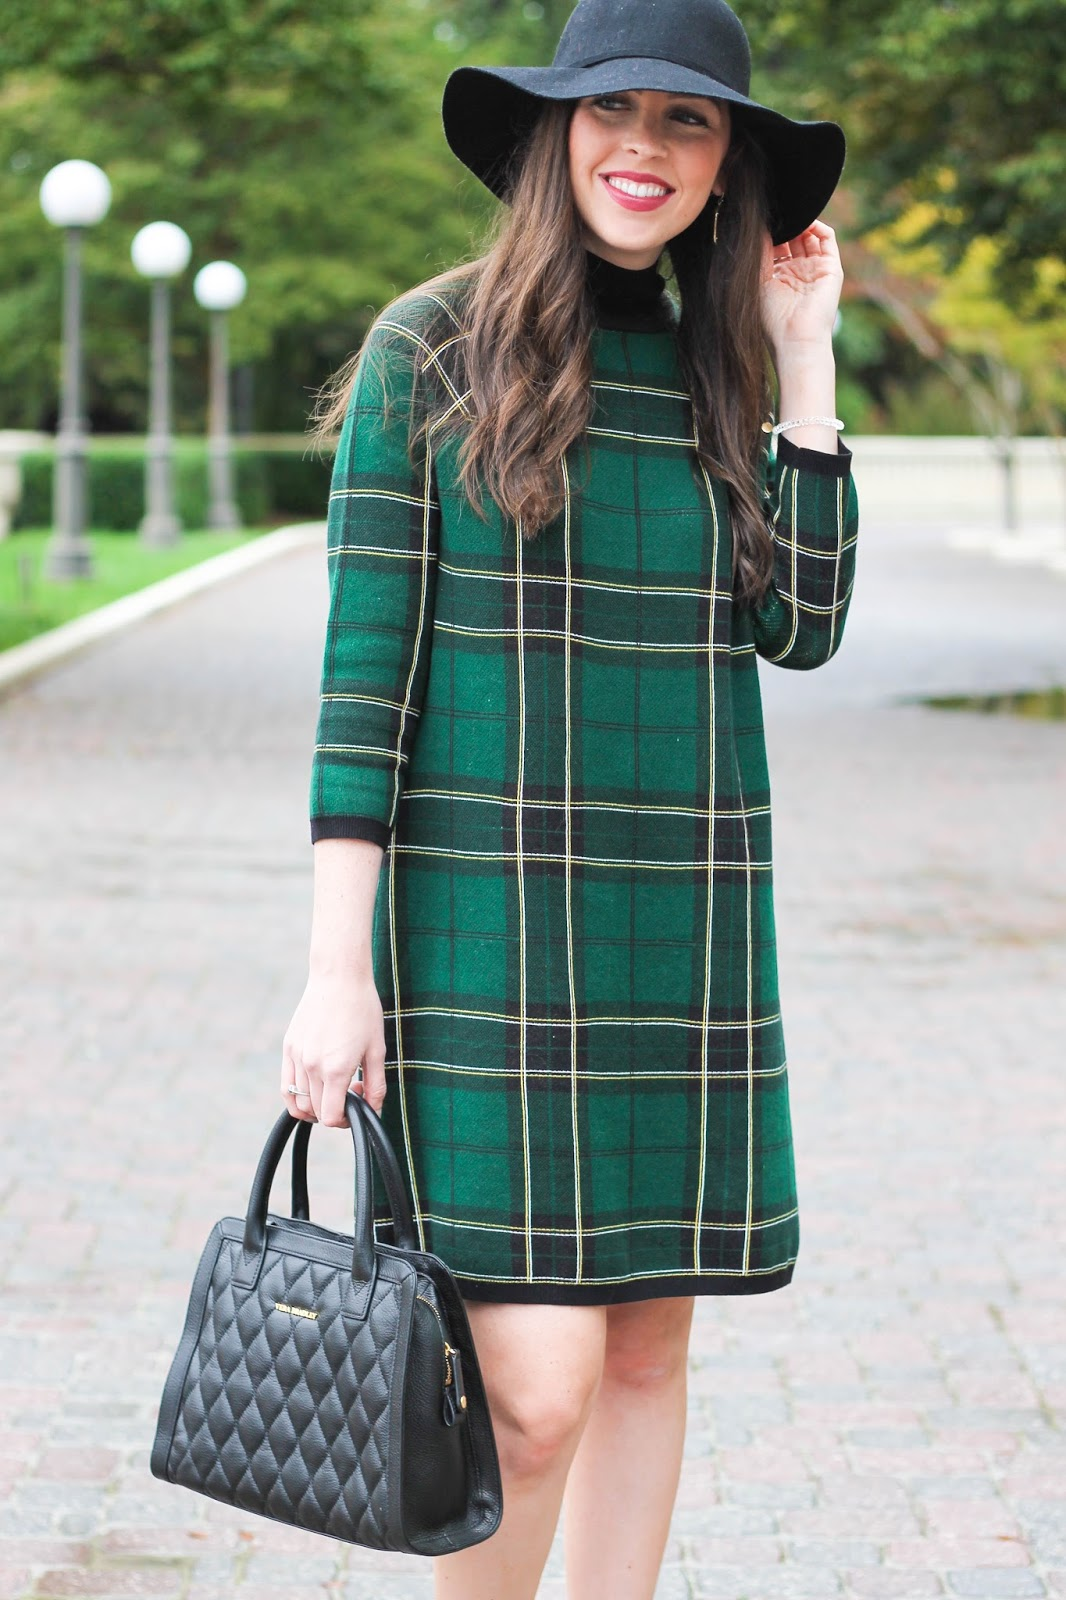 plaid sweater dress, fall outfit, fall style, asos plaid turtleneck dress, dark green dress, tan suede booties, sole society, ASOS, Vera Bradley, quilted leather satchel, black floppy hat, winter outfit, trends for fall, fashion blogger, raleigh, north carolina blogger